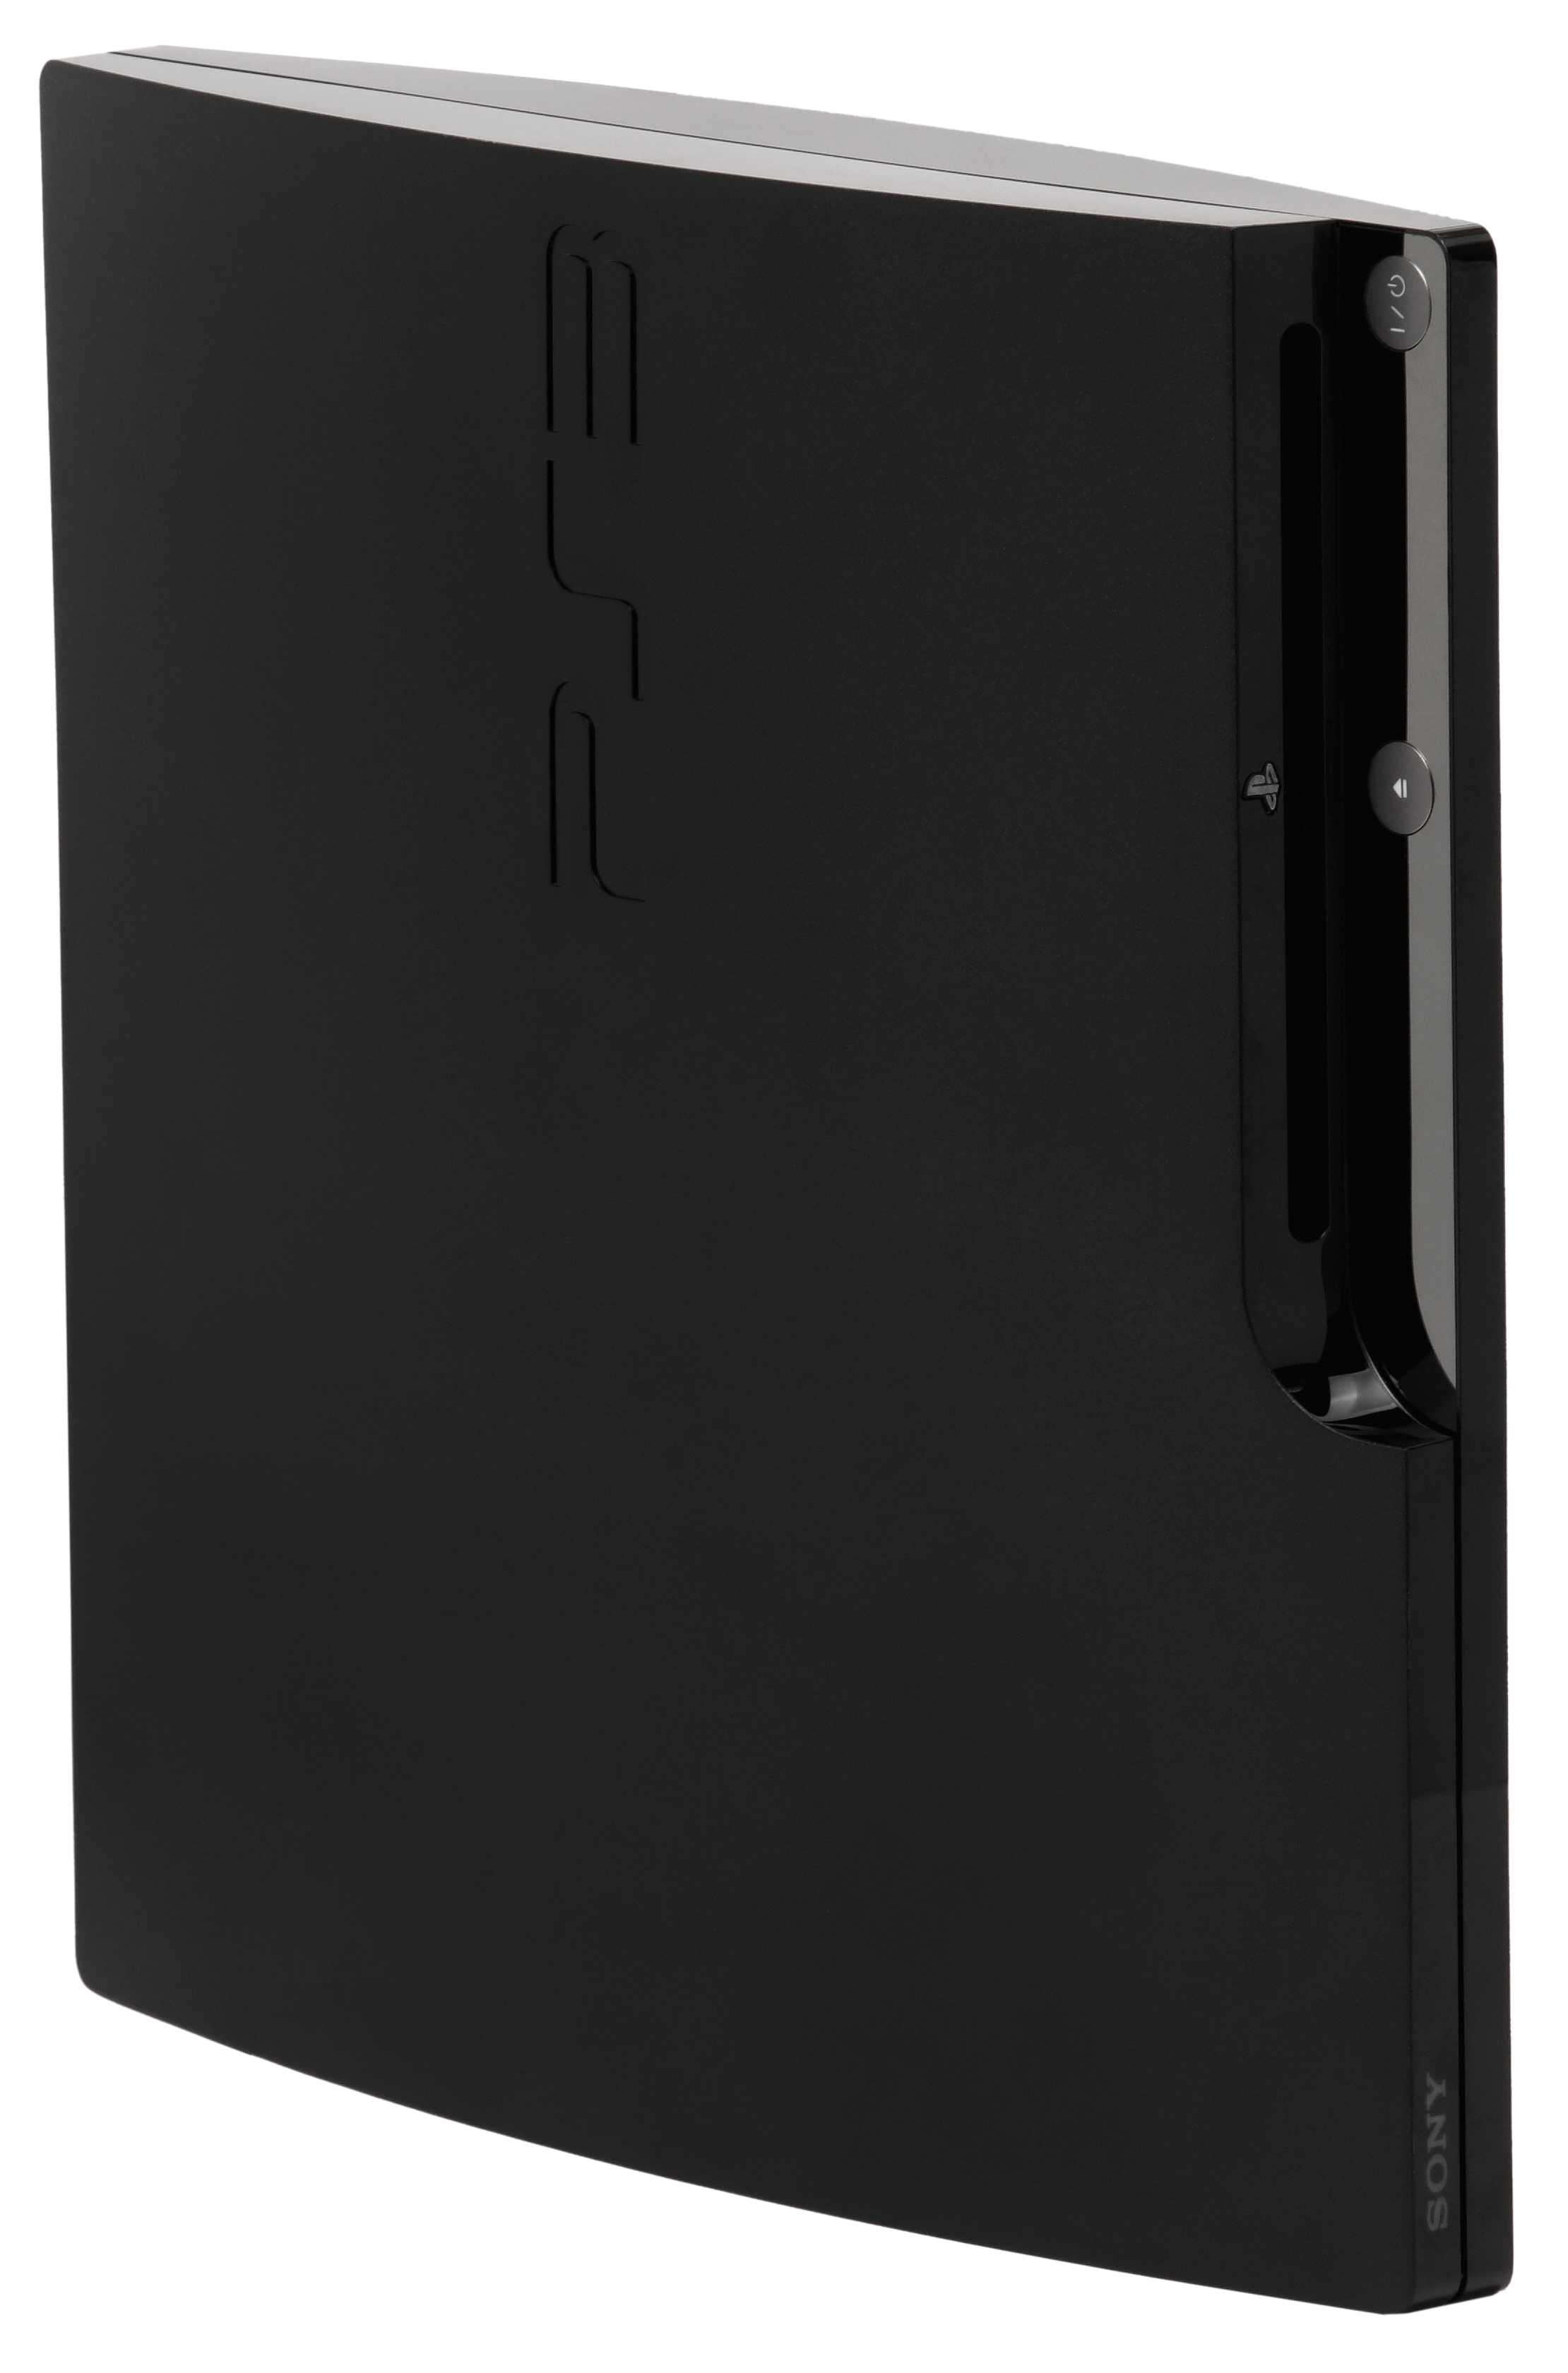 File:PS3-Slim-Console-Vert.png - Wikimedia Commons